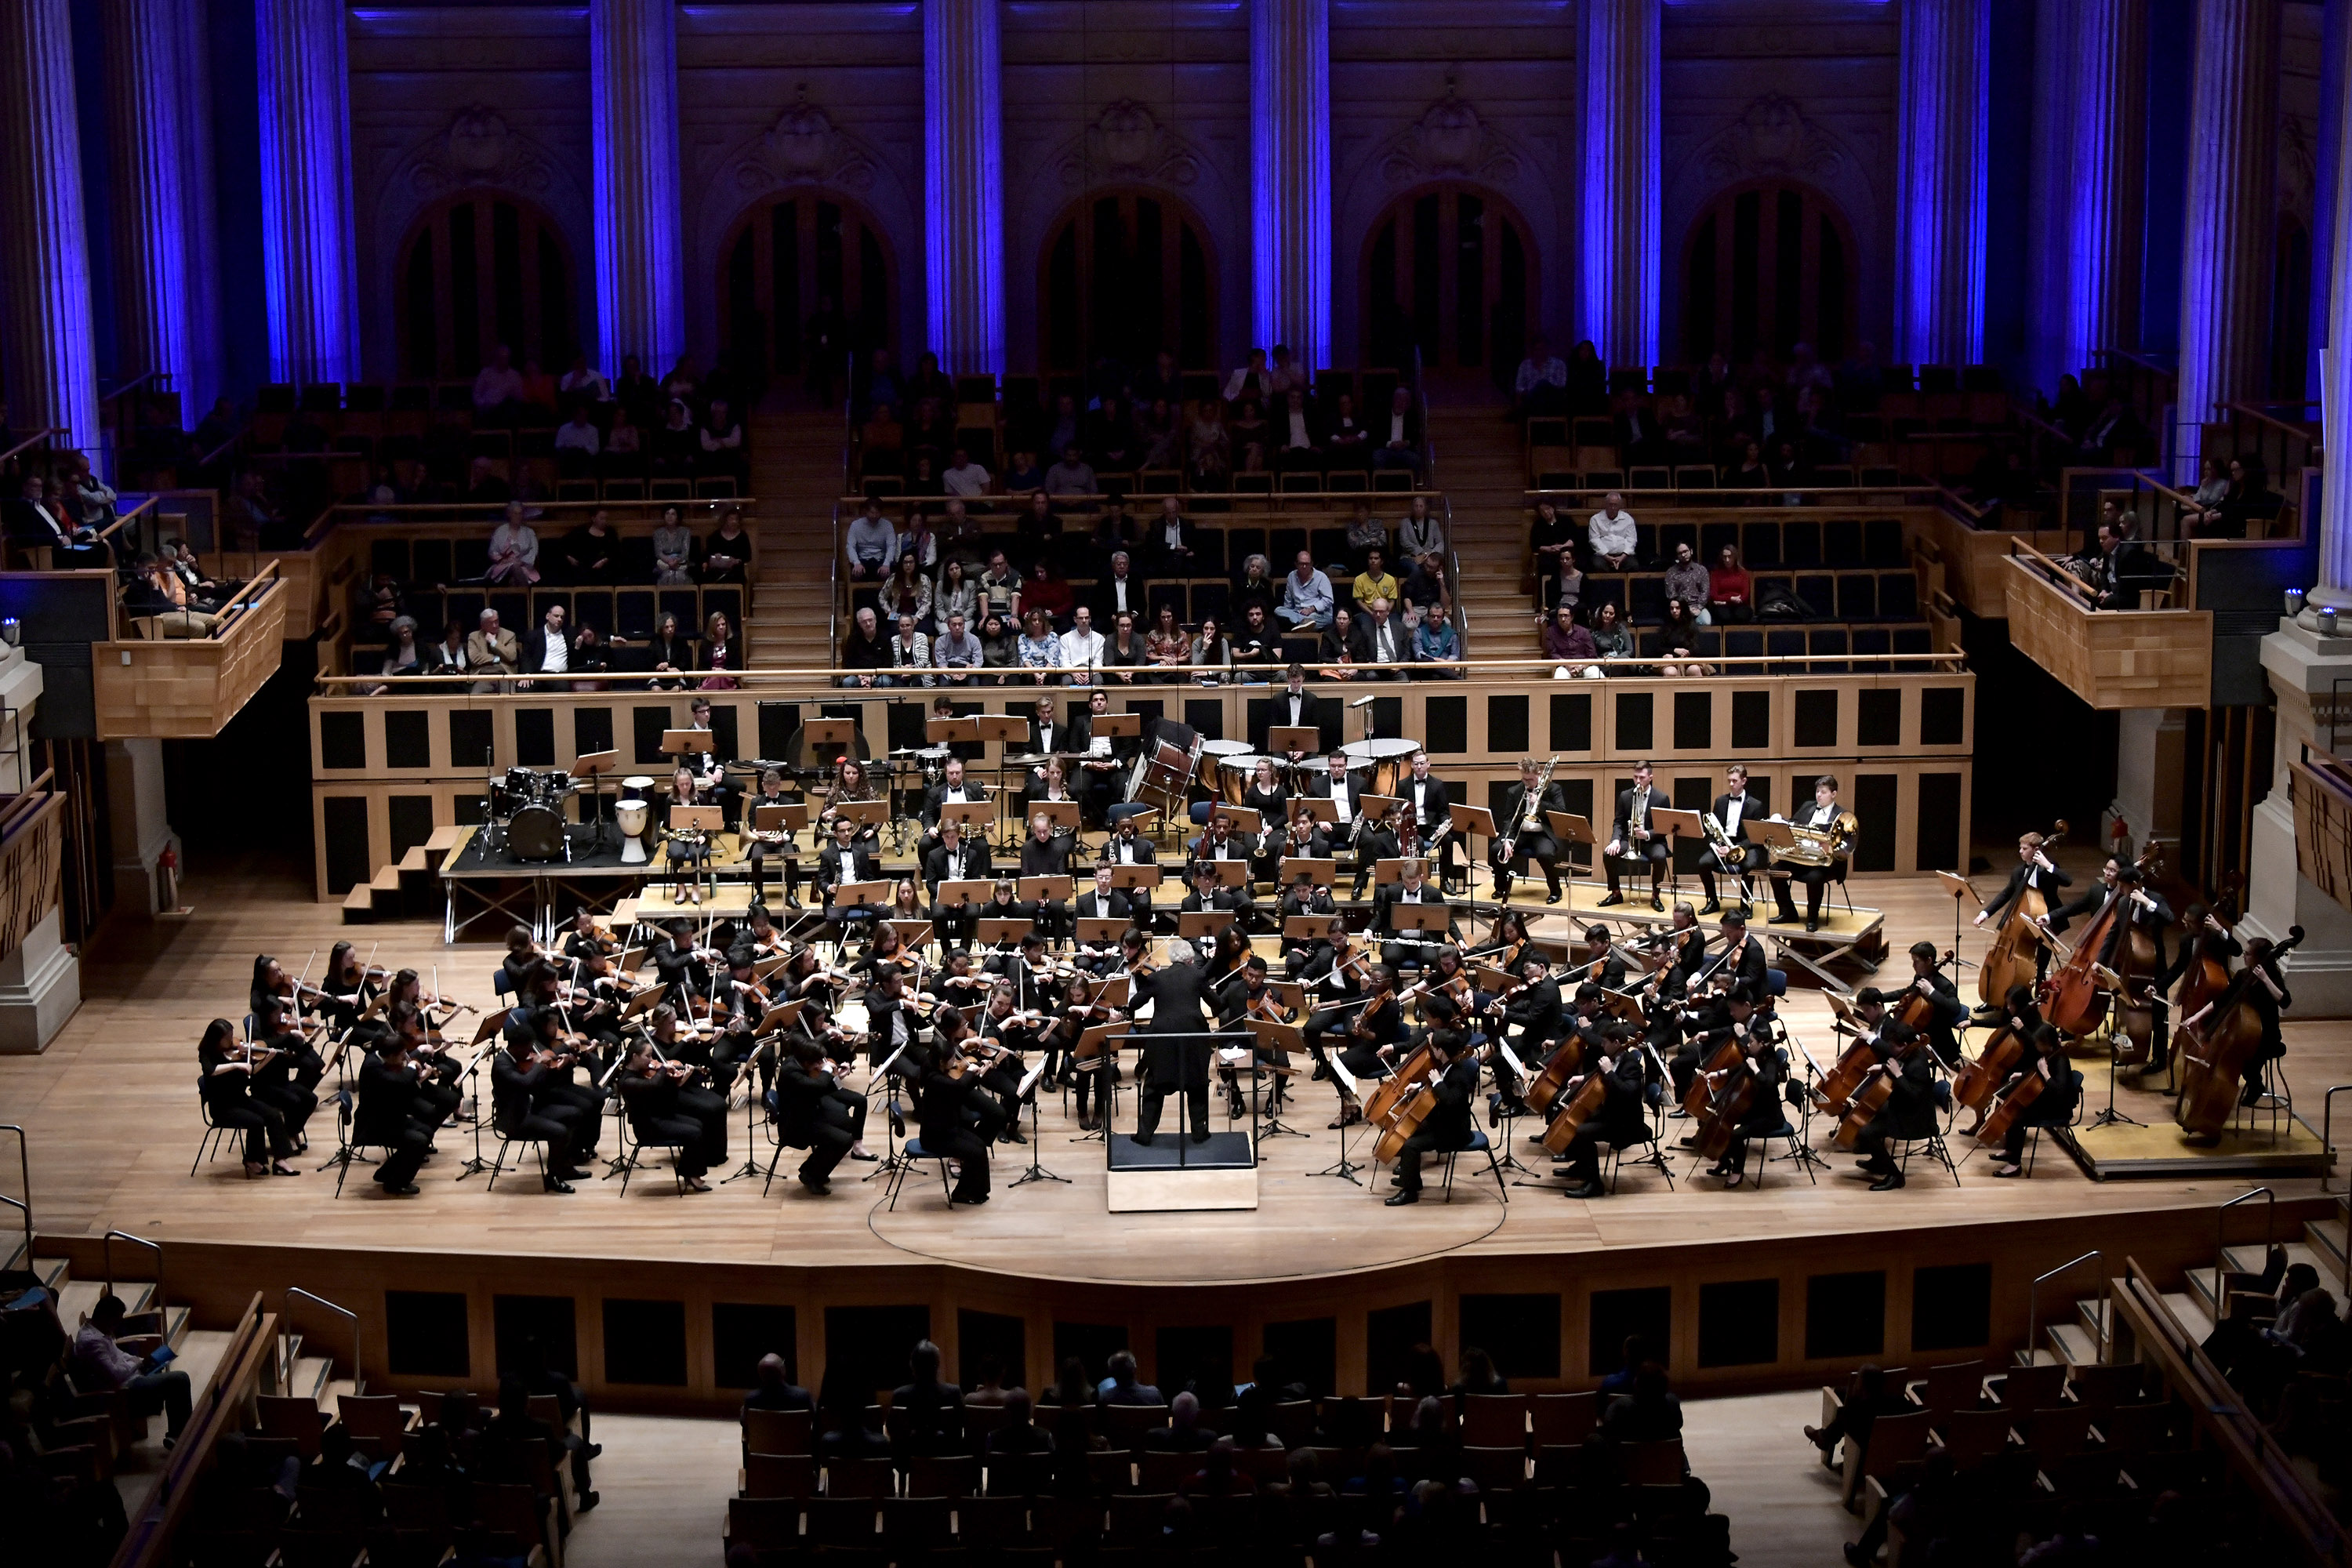 The BPYO performing Shostakovich's Symphony no. 10 in the Sala São Paulo